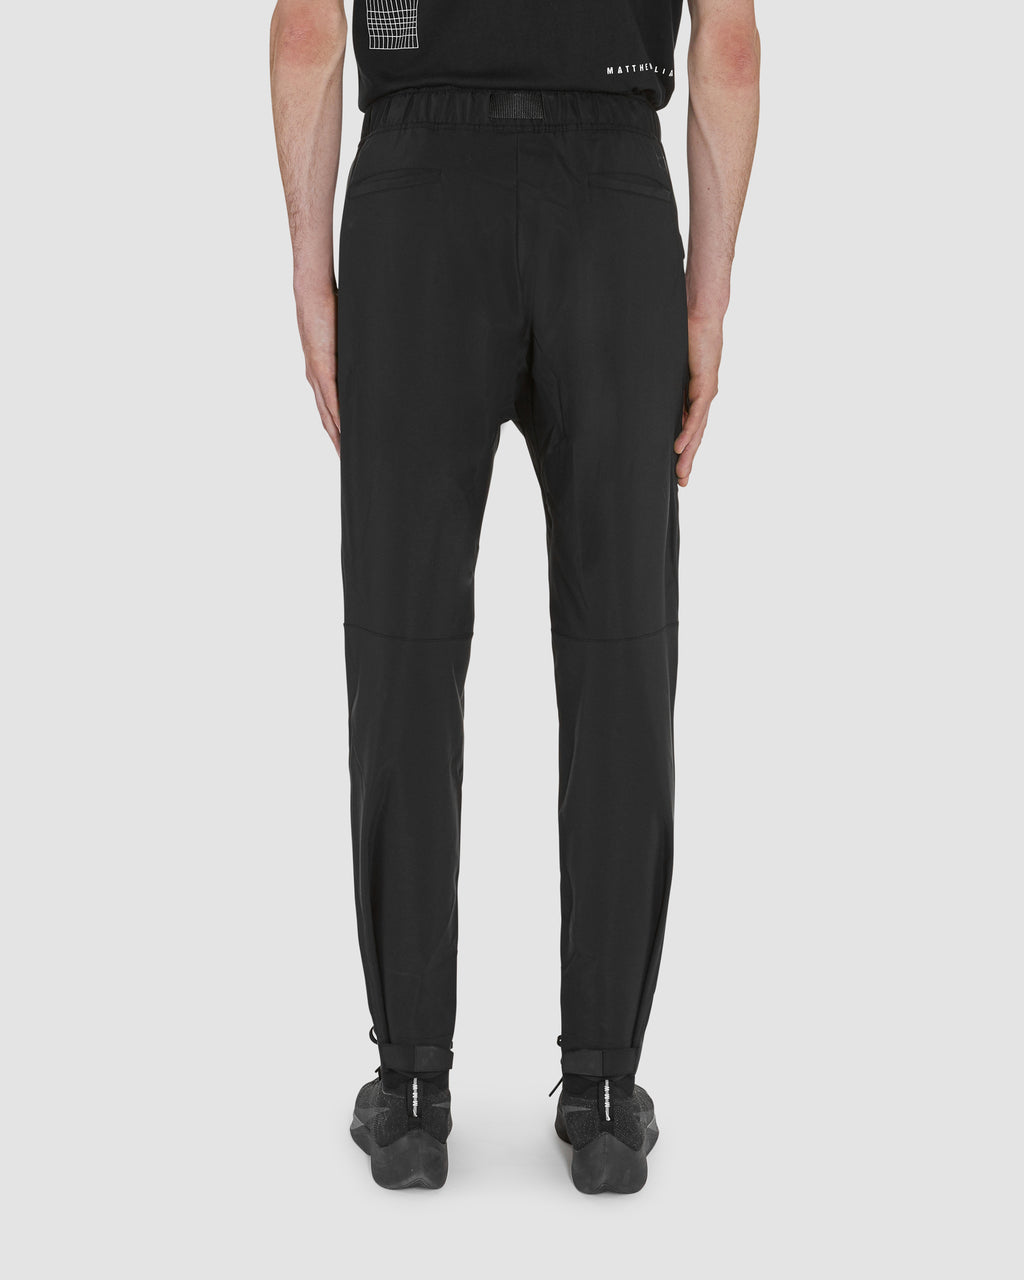 NIKE x MMW Training Pant